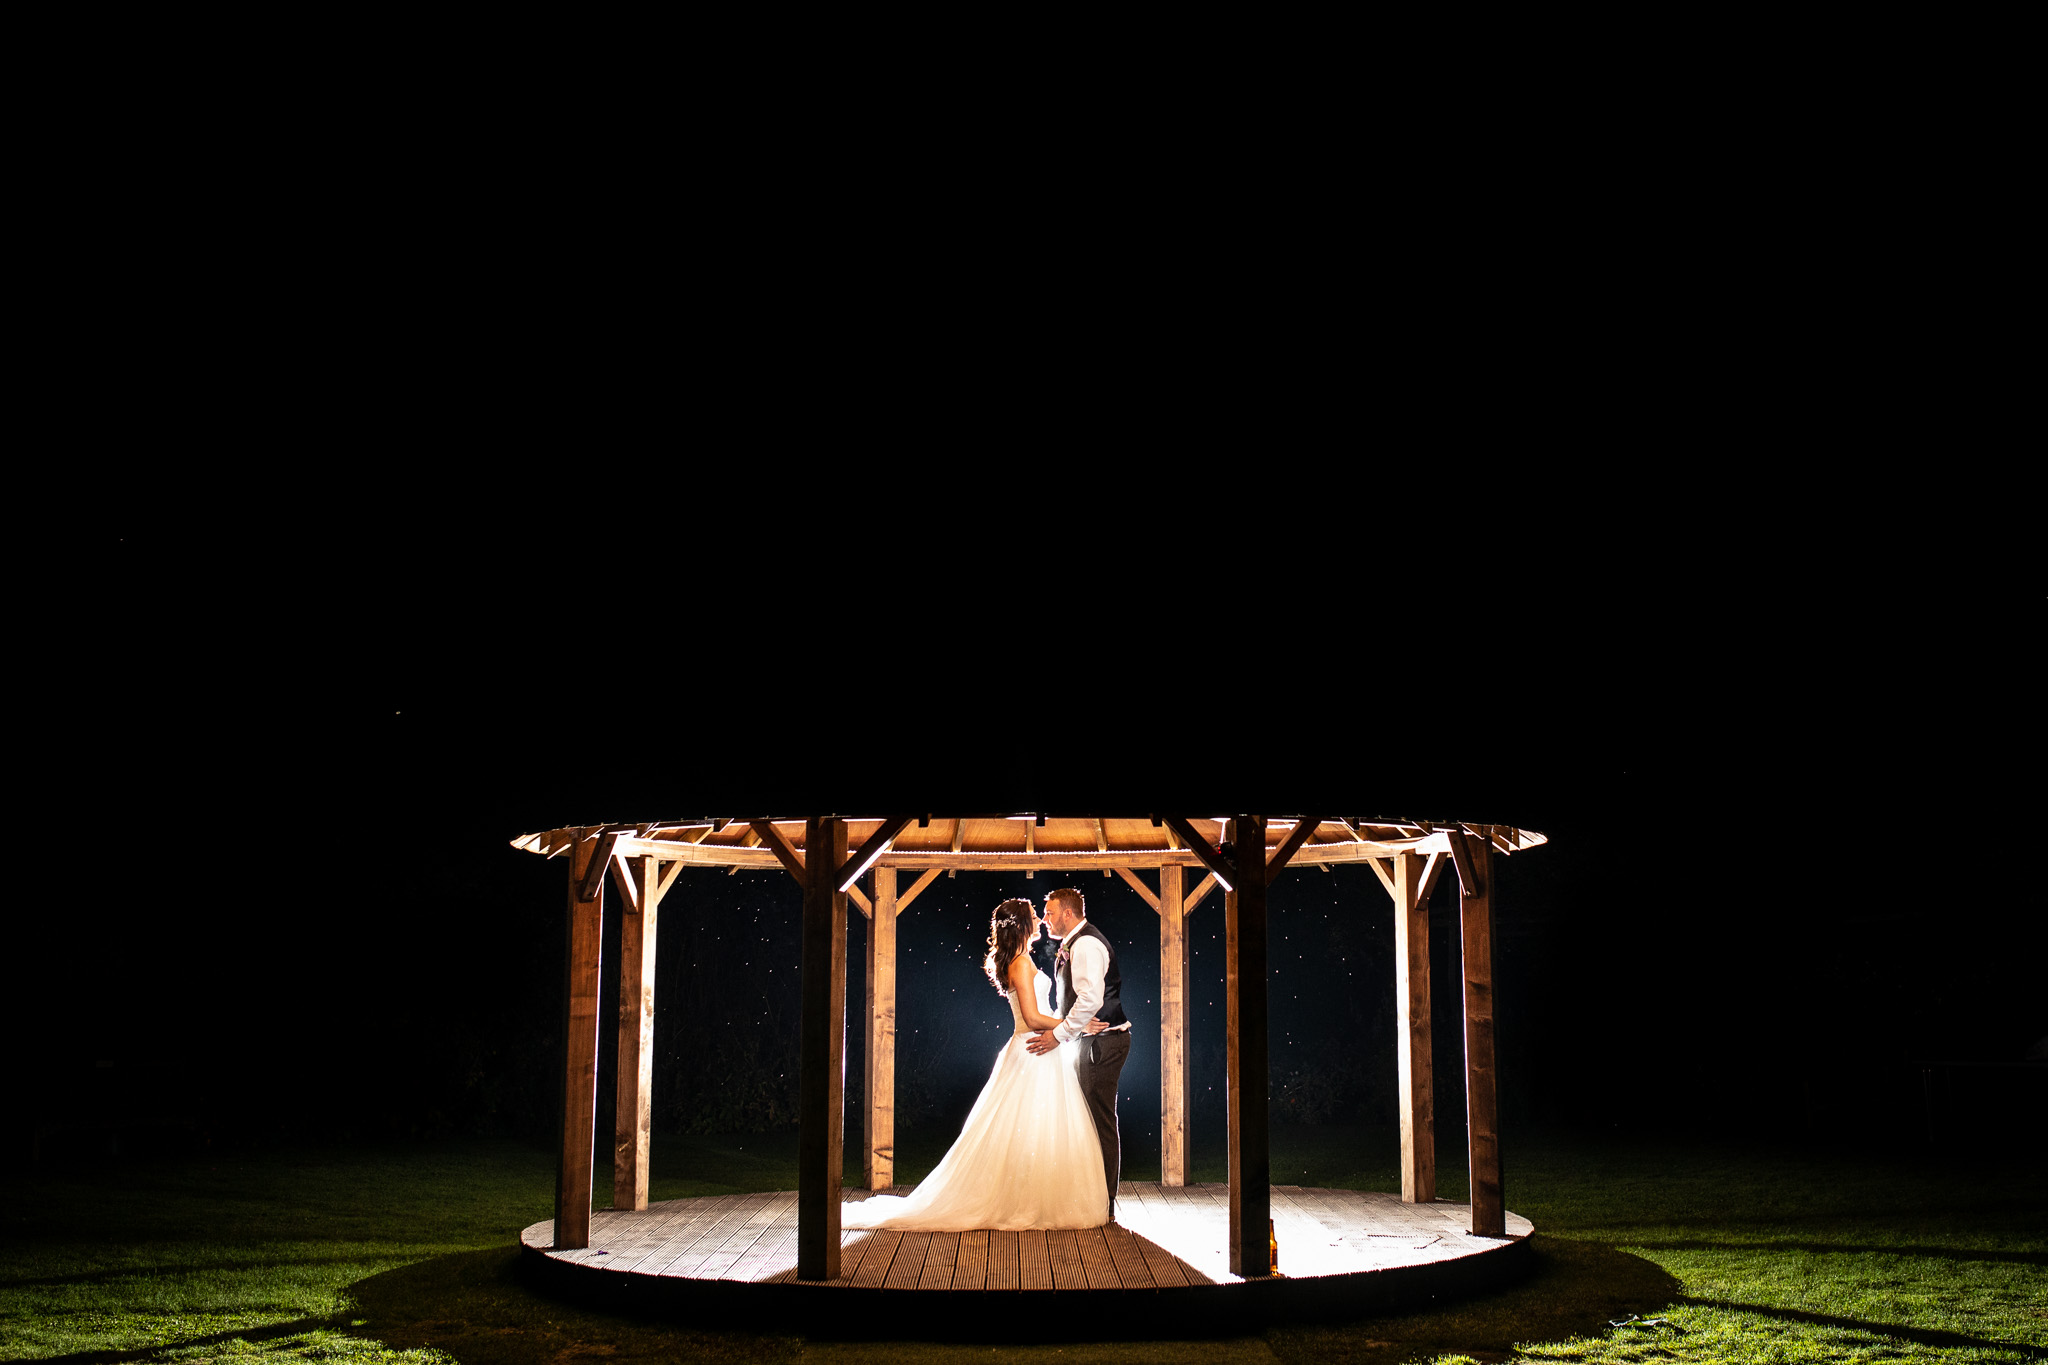 Kent wedding photography after dark at gardens of yalding